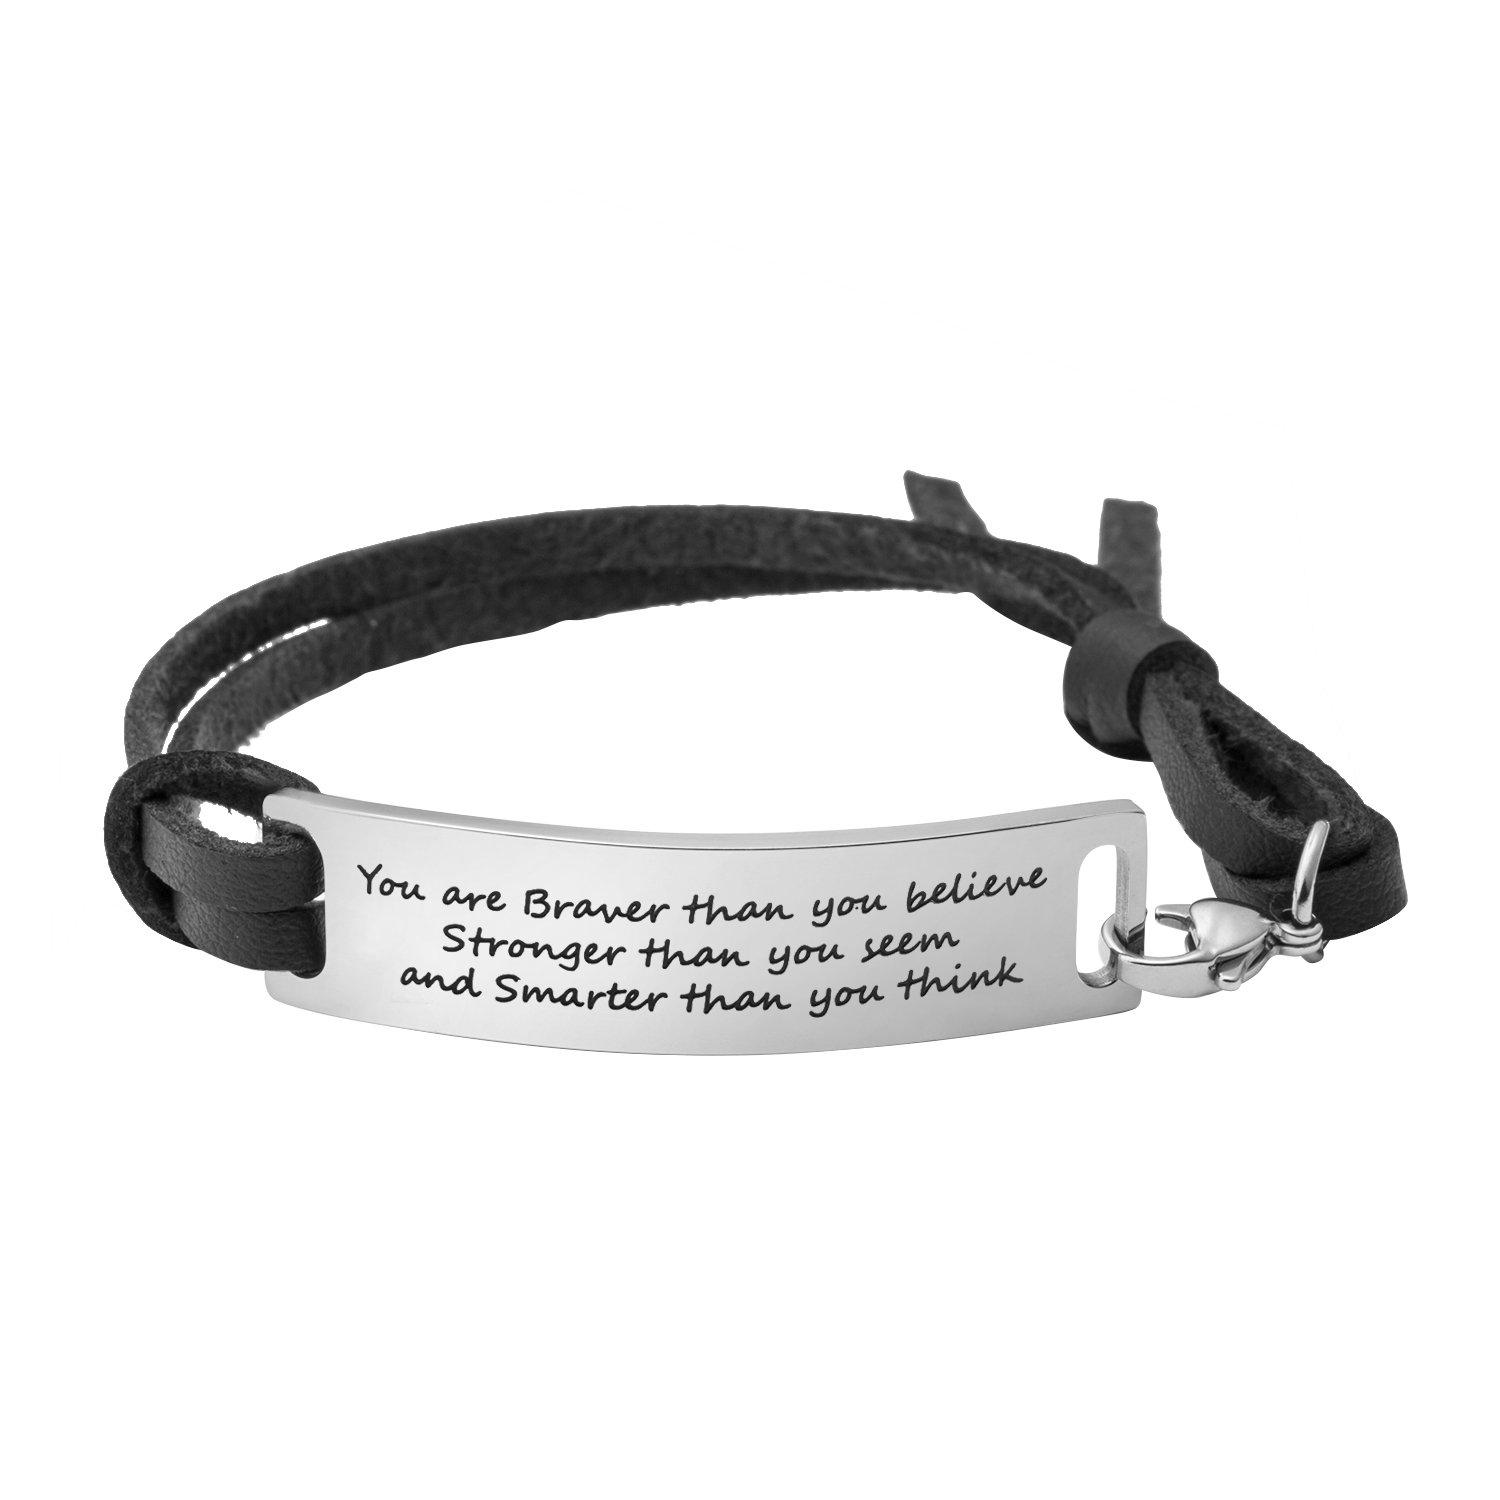 Yiyang Graduation Jewelry for Gilrs Birhday Gifts for Her Inspirational Leather Bracelets Positive Mantra